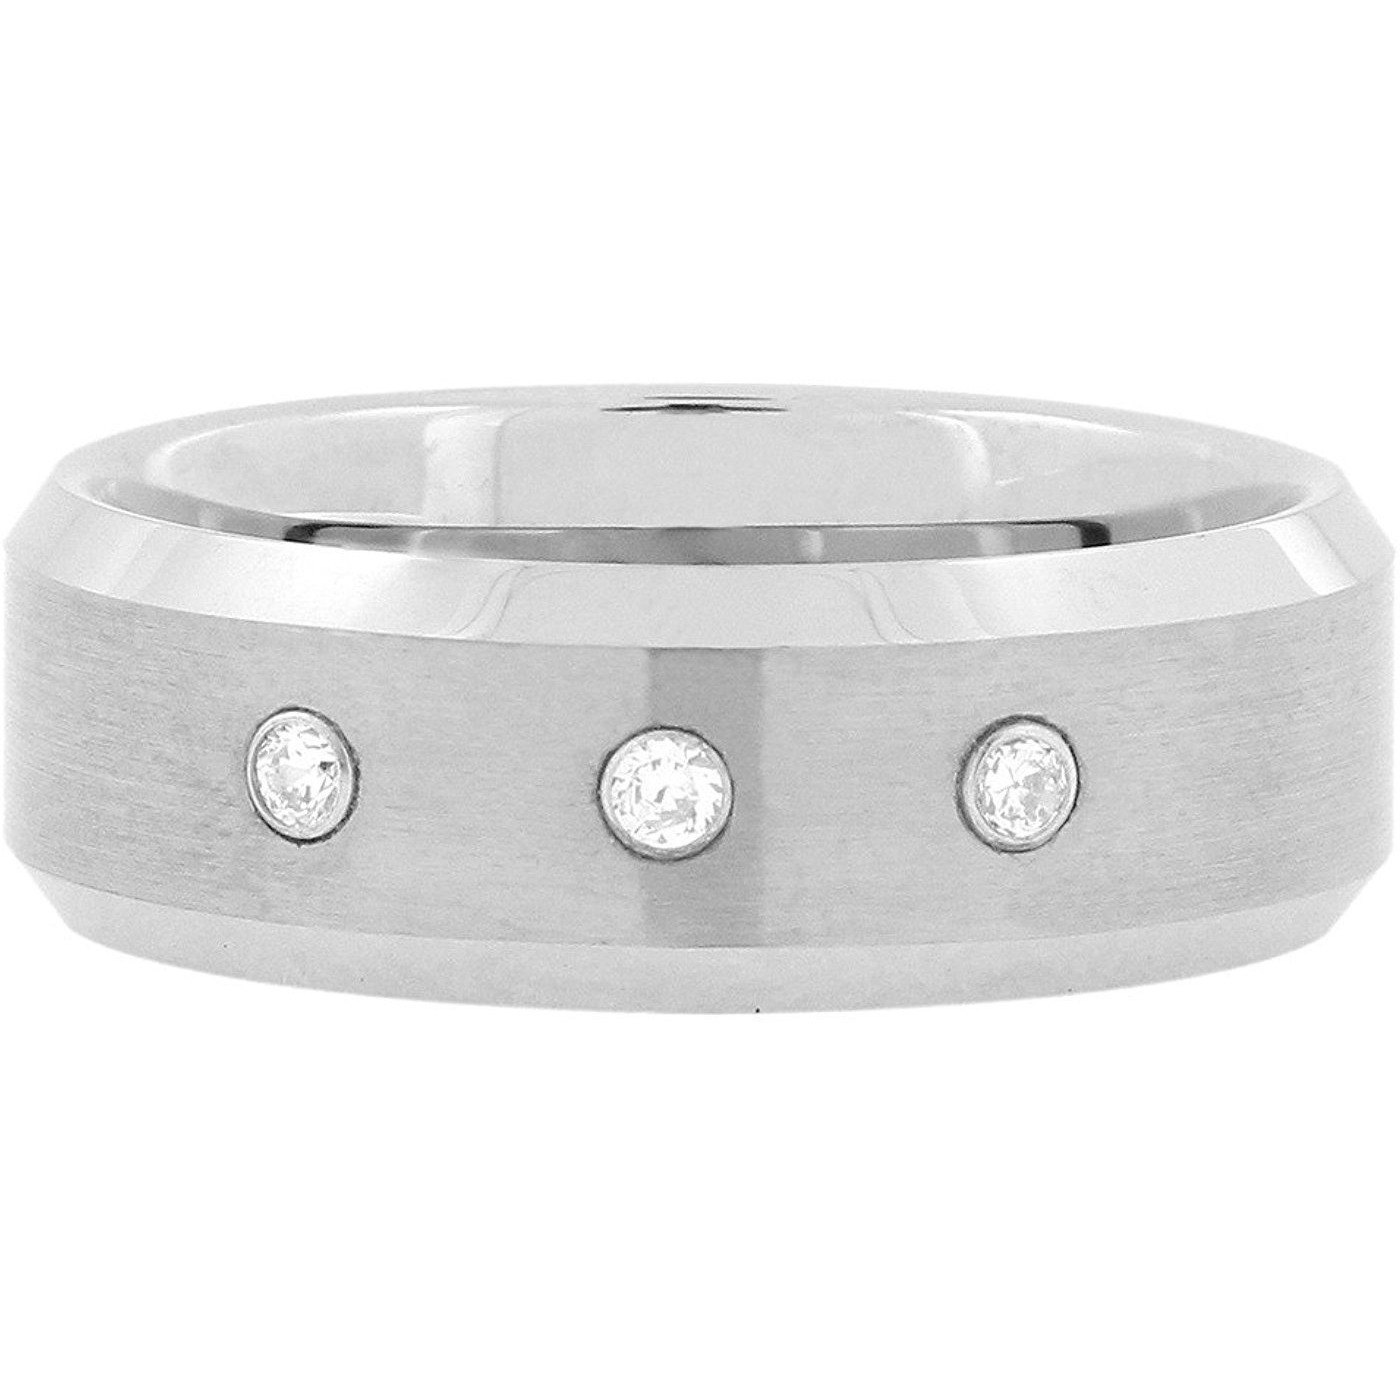 Zivom American Diamonds In Tungsten Wedding Engagement Band Ring